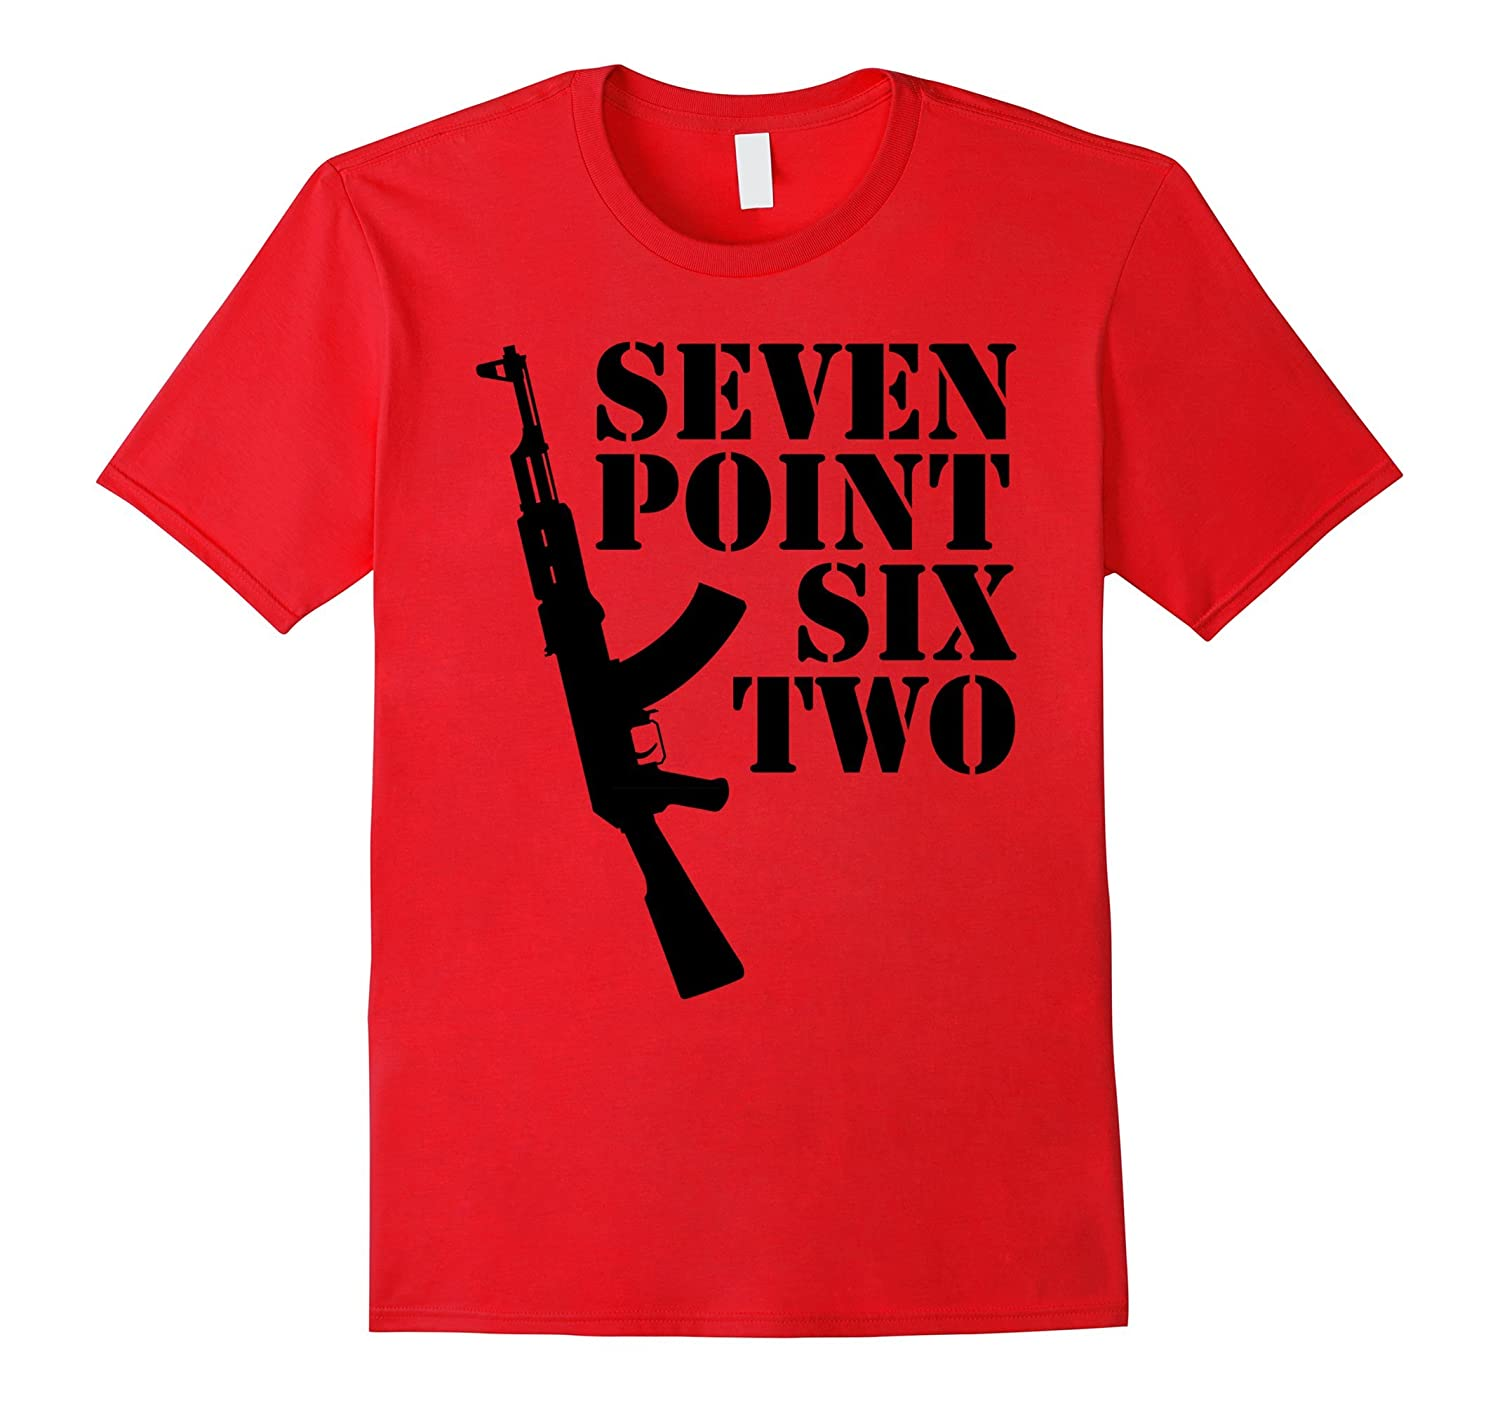 AK-47 Patriot Freedom 2nd Amendment 762 T-shirt-PL